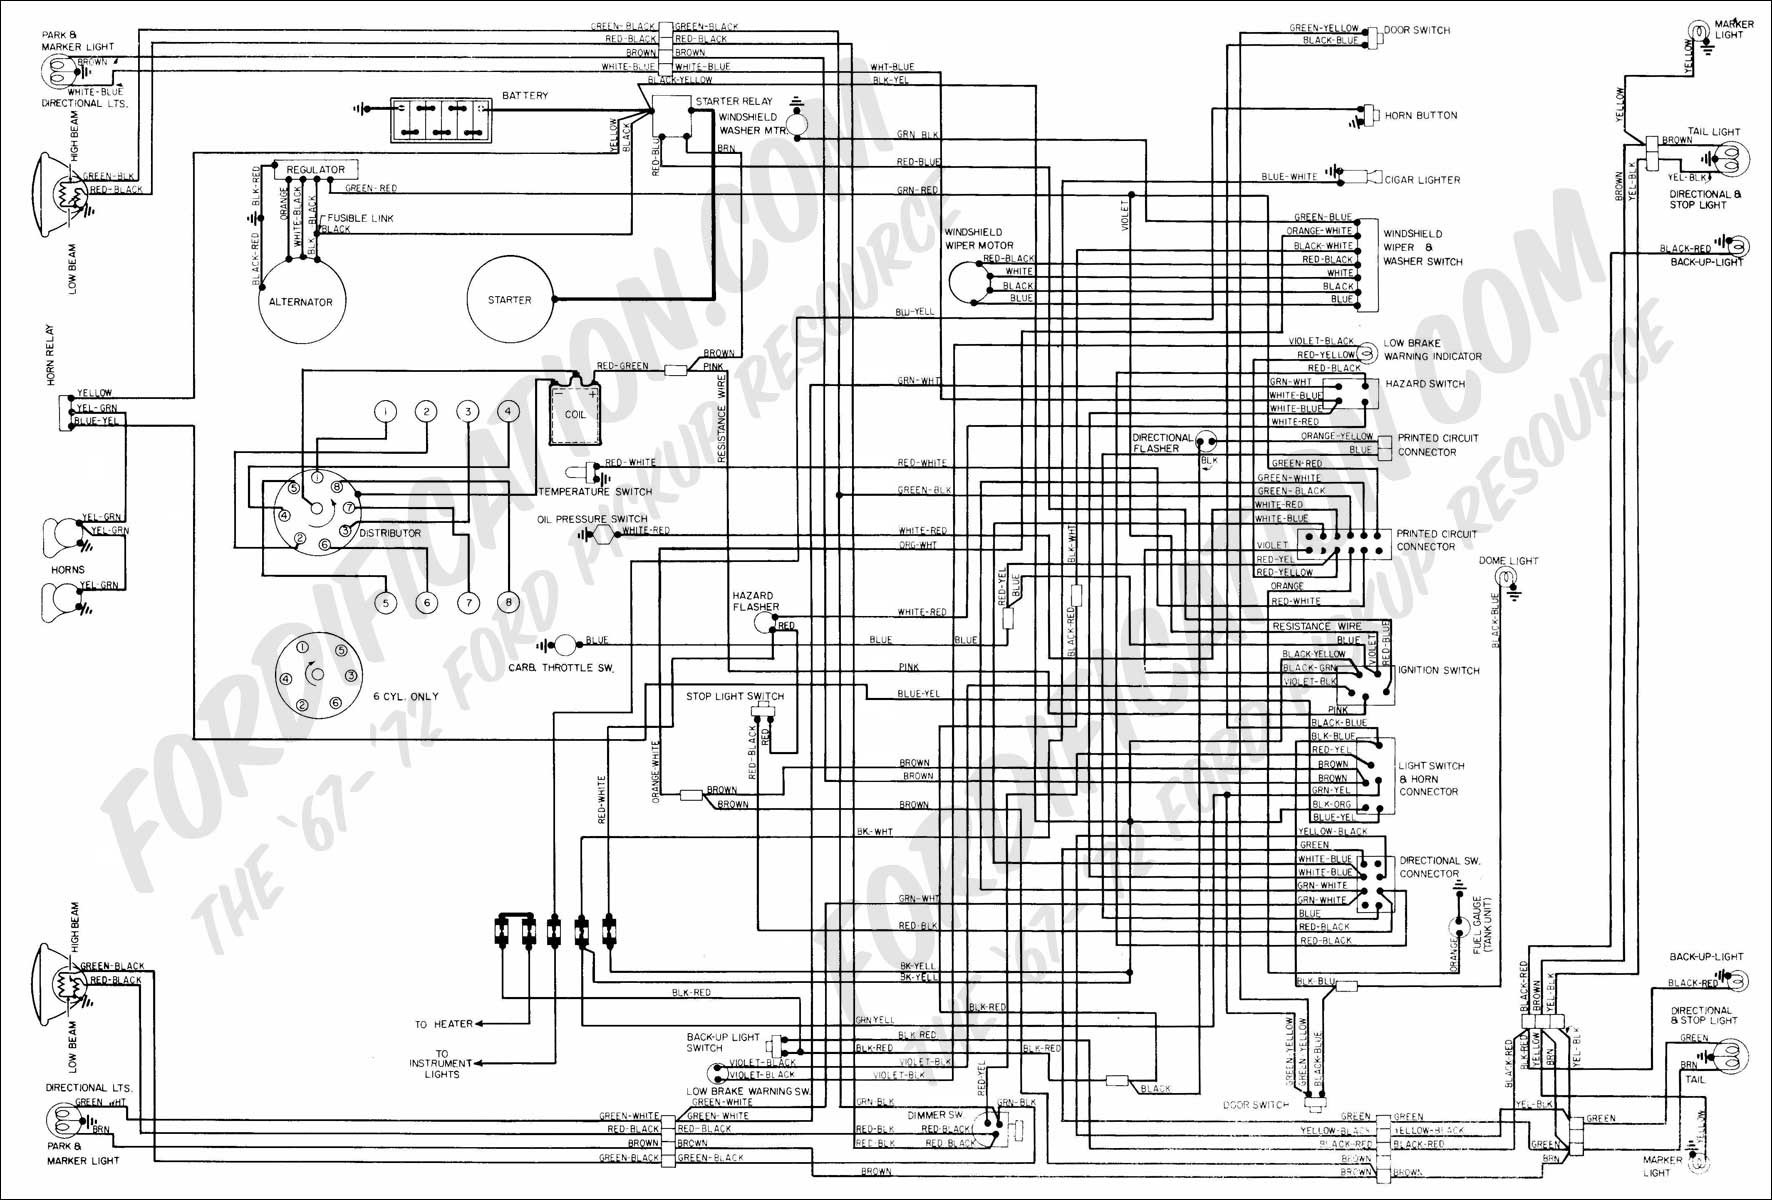 2003 Ford Windstar Headlamp Wiring Diagram Another Blog About 1300 Tractor Alternator 1999 Rh Detoxicrecenze Com